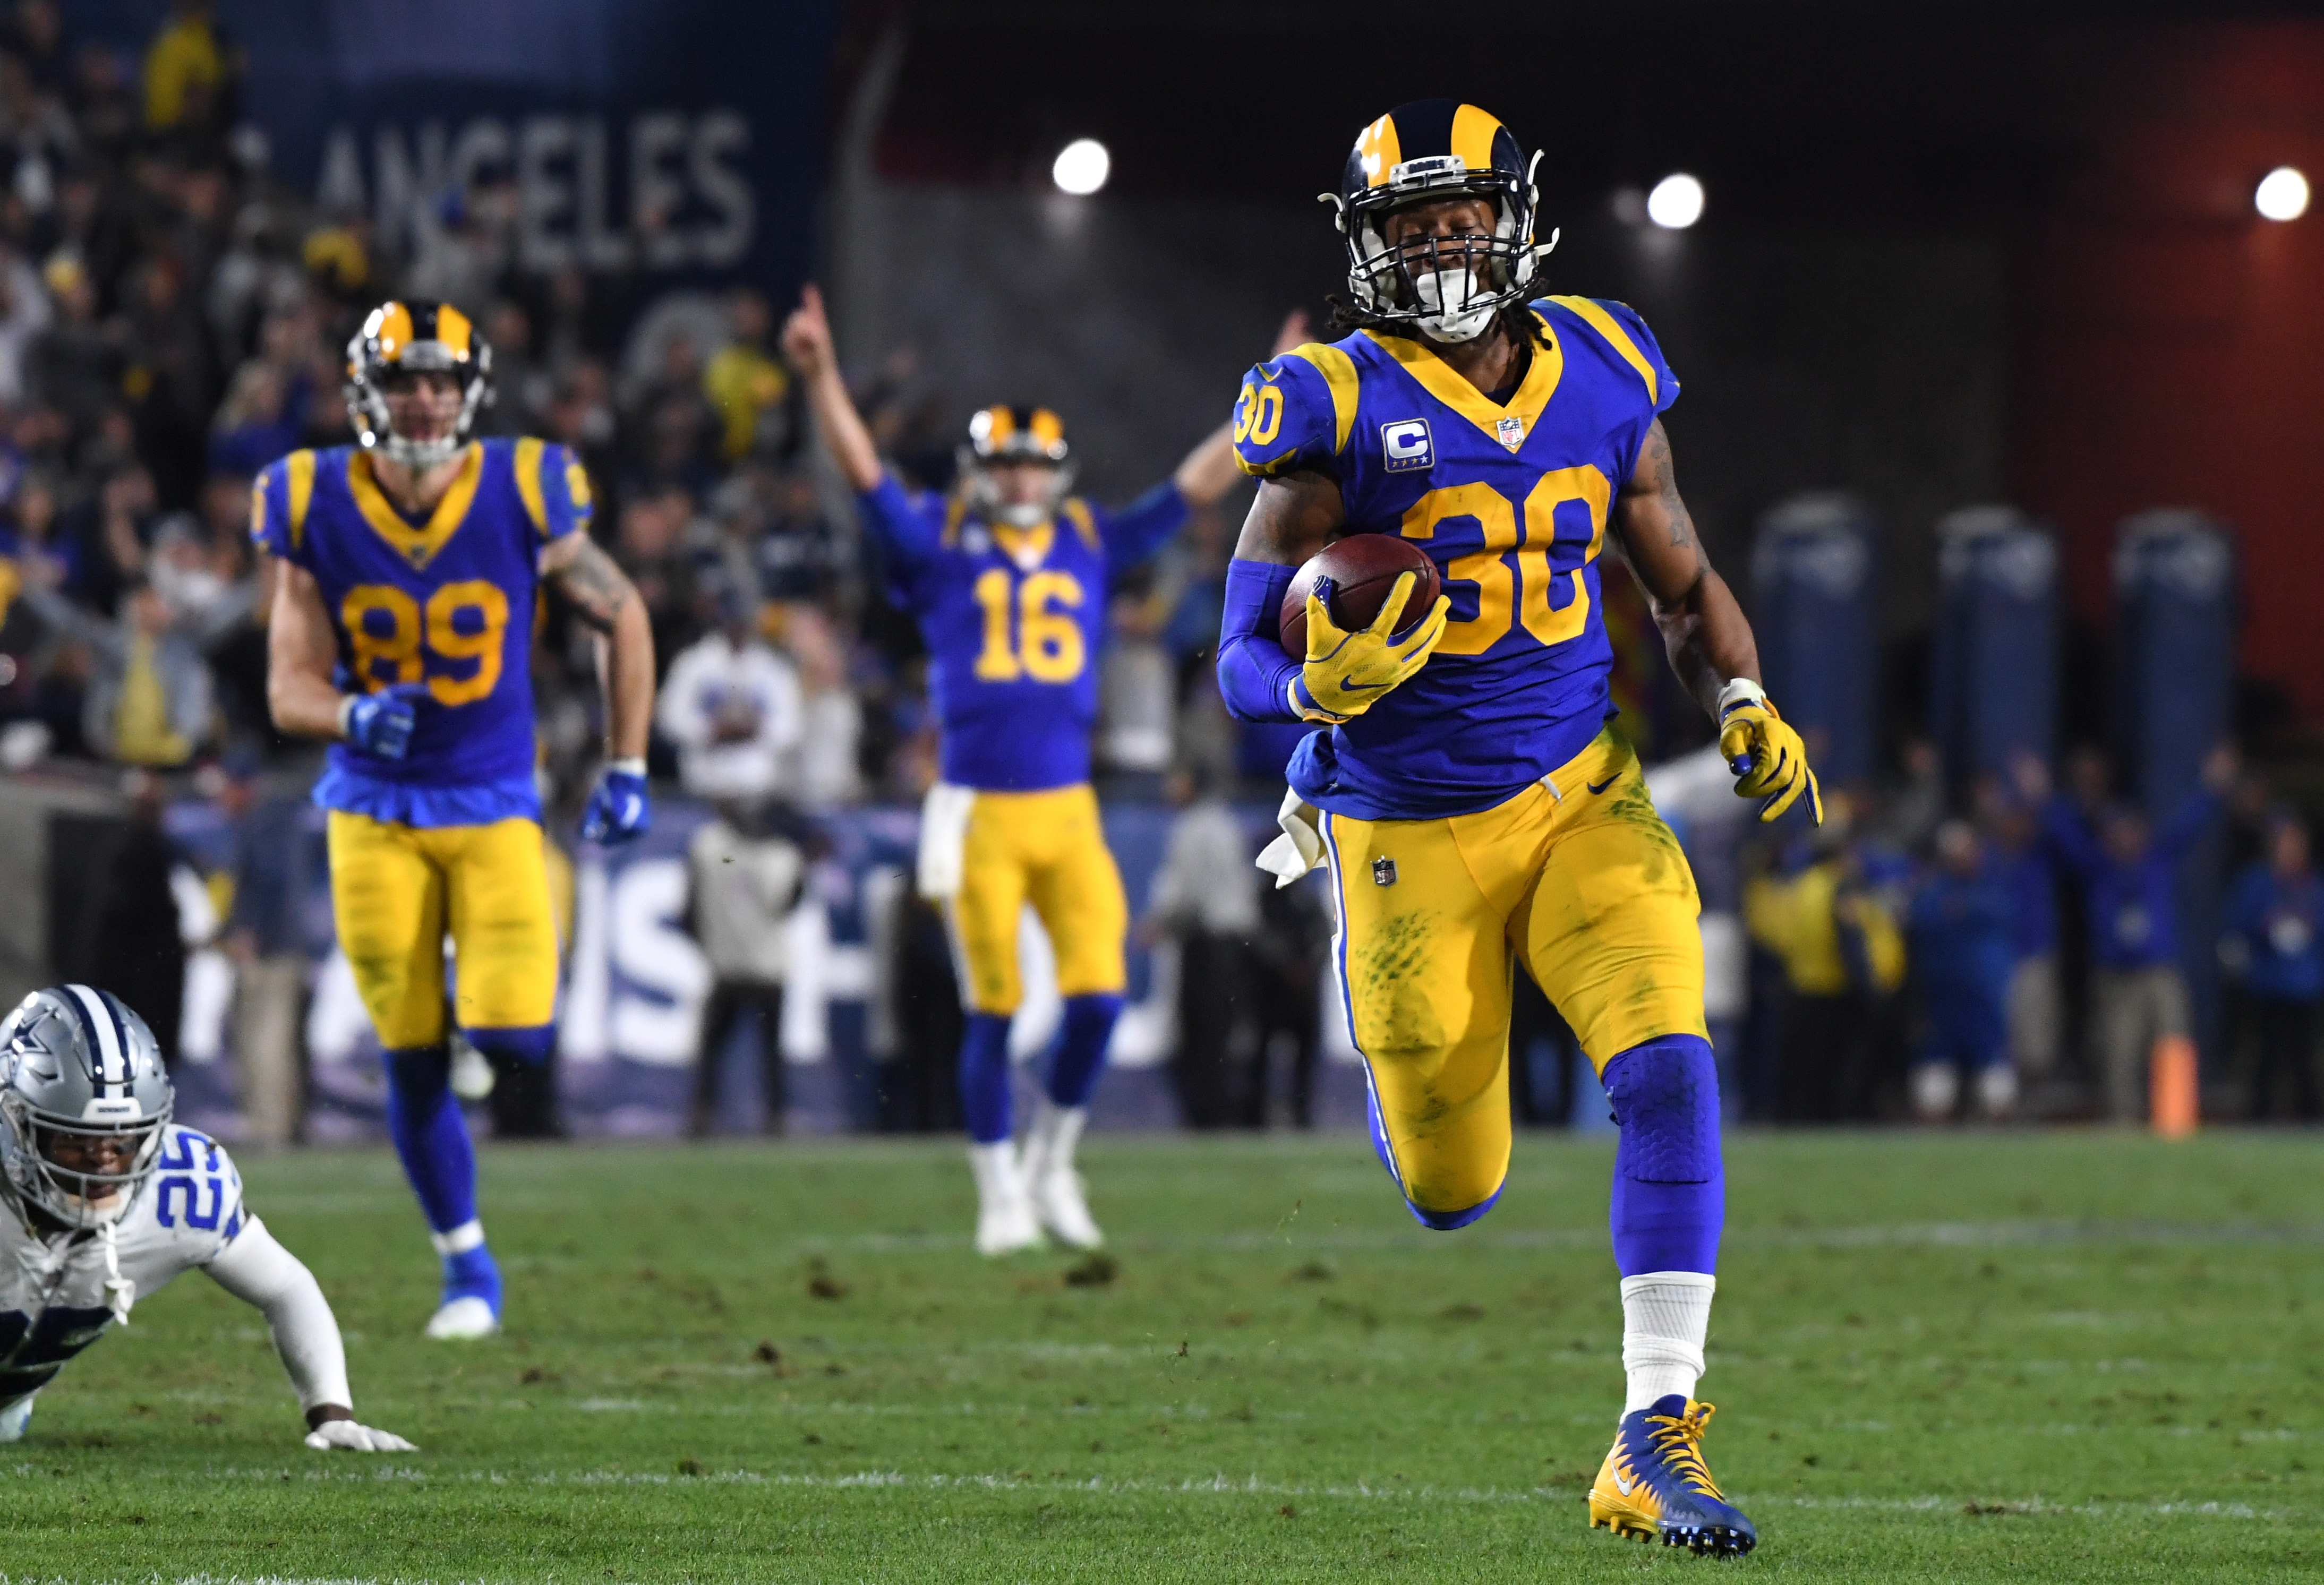 Los Angeles Rams RB Todd Gurley runs in a touchdown against the Dallas Cowboys, Jan. 12, 2019.